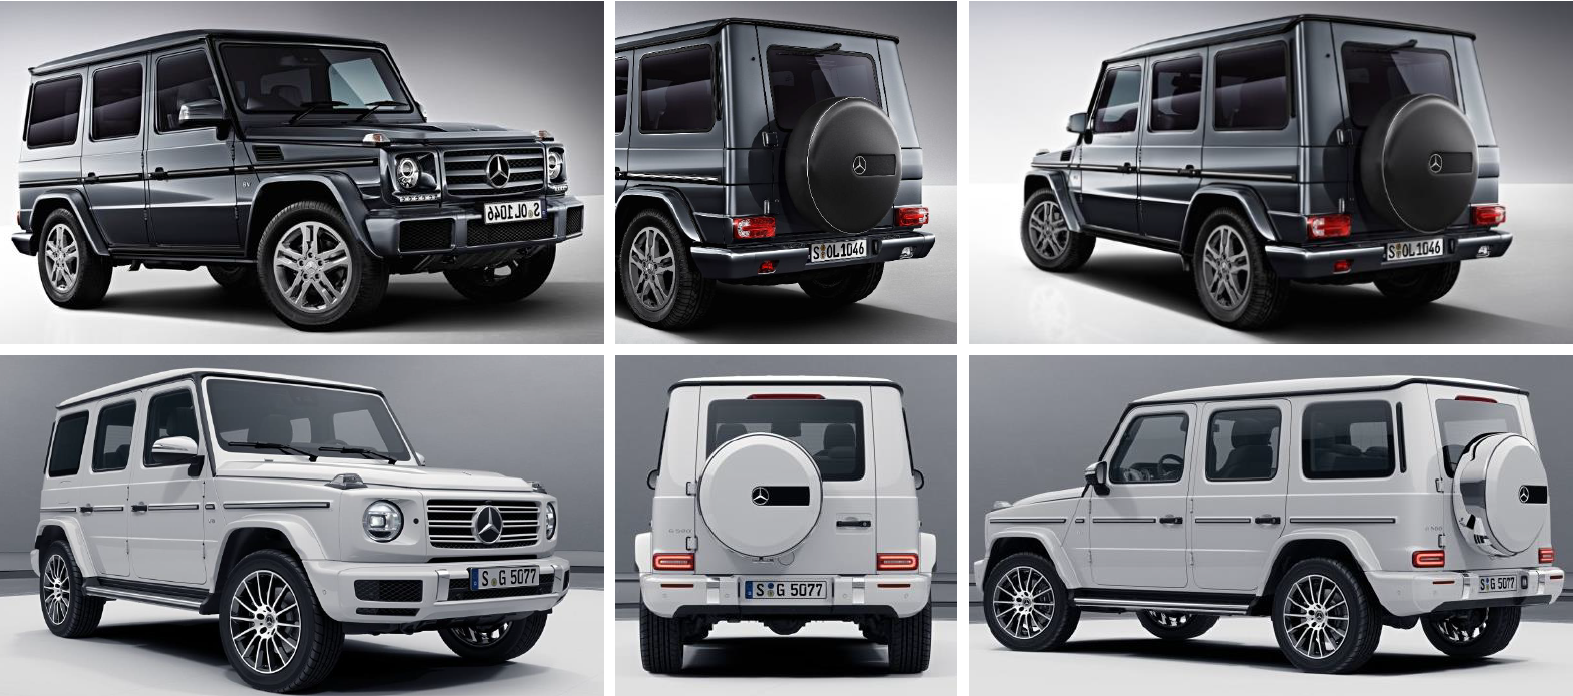 The 2018 Mercedes Benz G550 Vs The 2019 Mercedes Benz